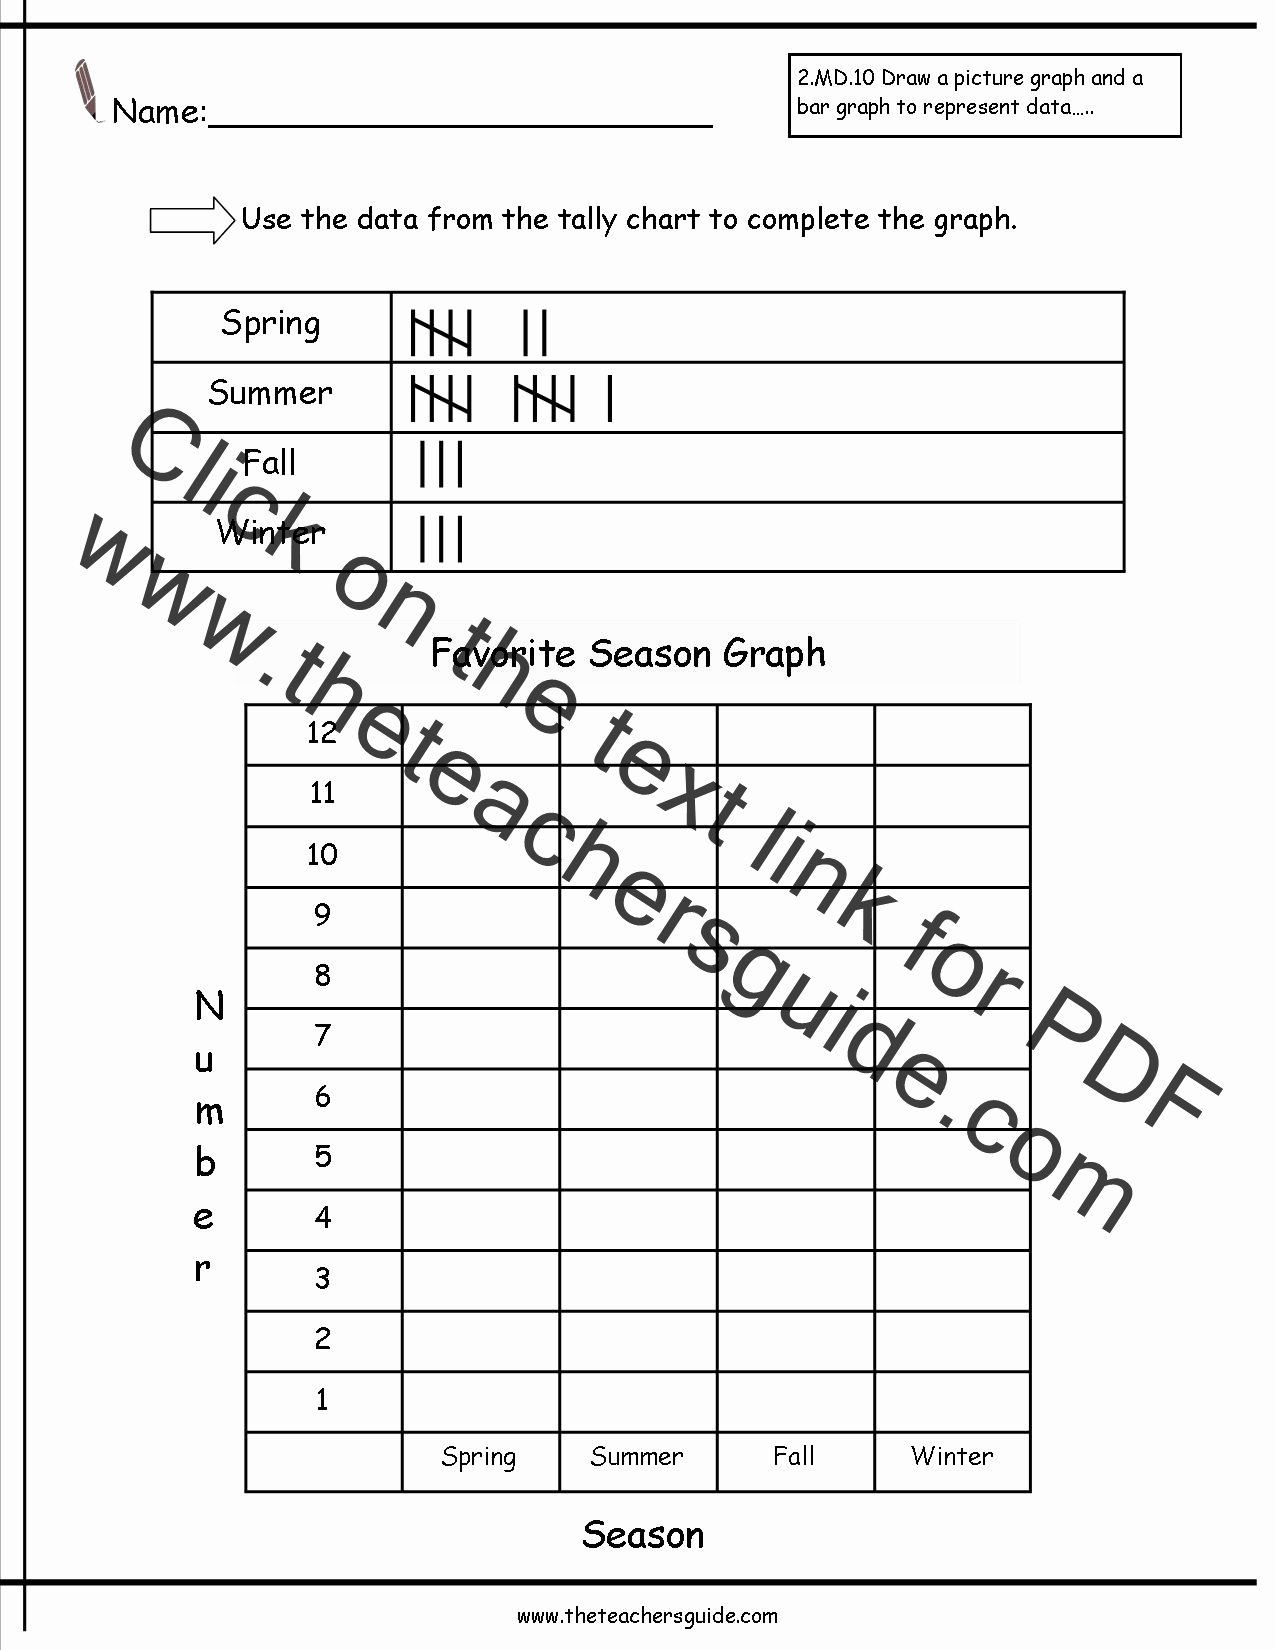 Creating Bar Graph Worksheets Unique Reading and Creating Bar Graphs Worksheets From the